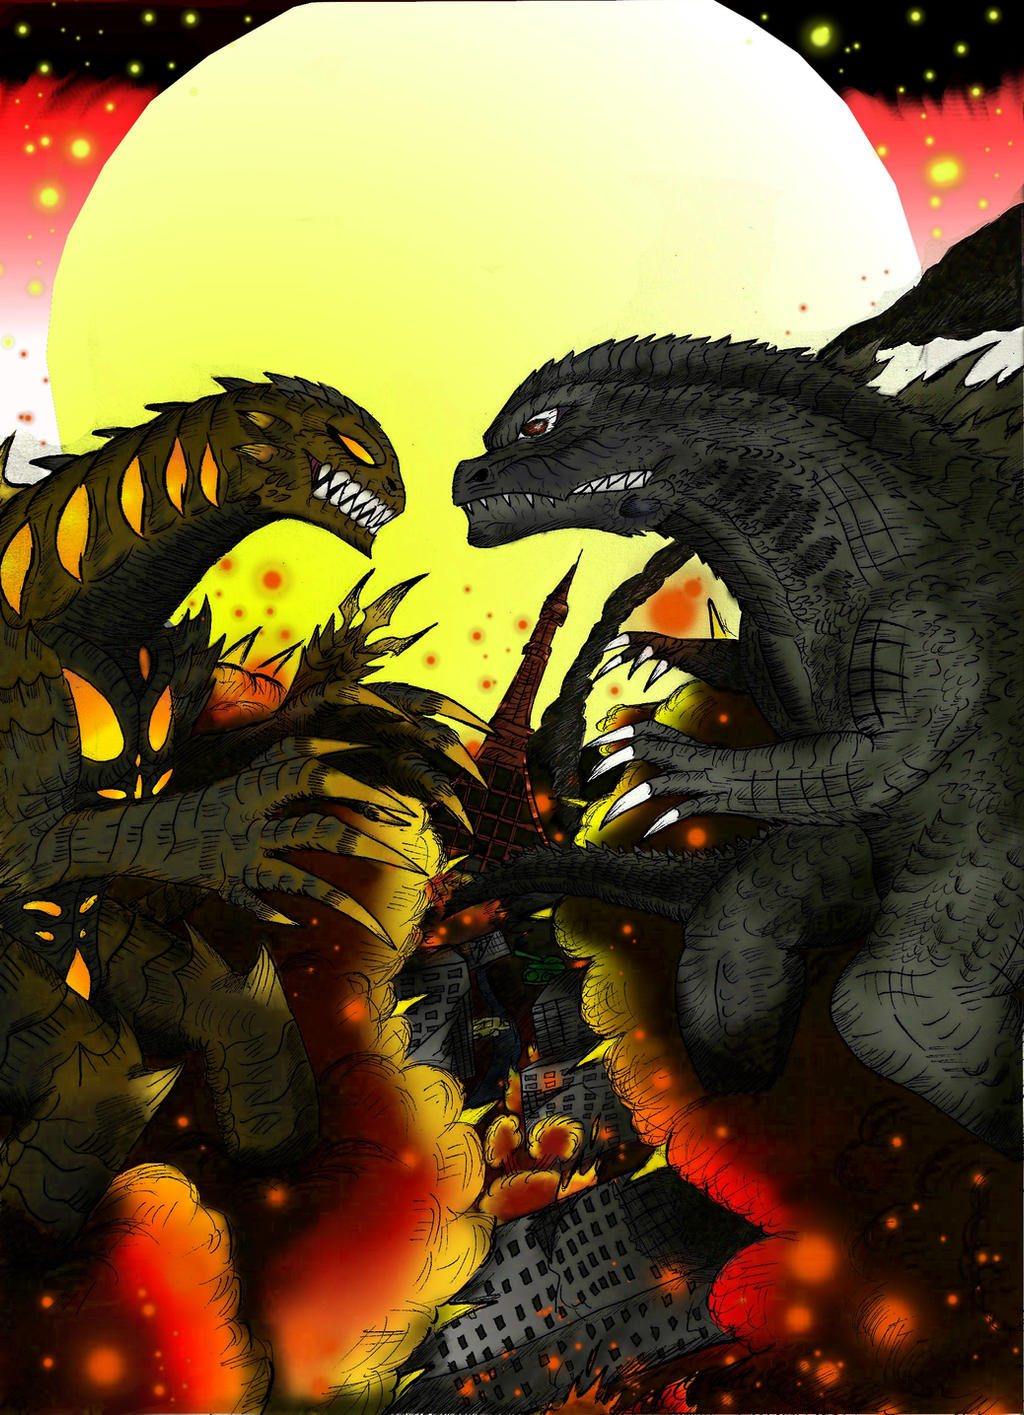 Godzilla vs Nemesis Alt cover by SaintNick14